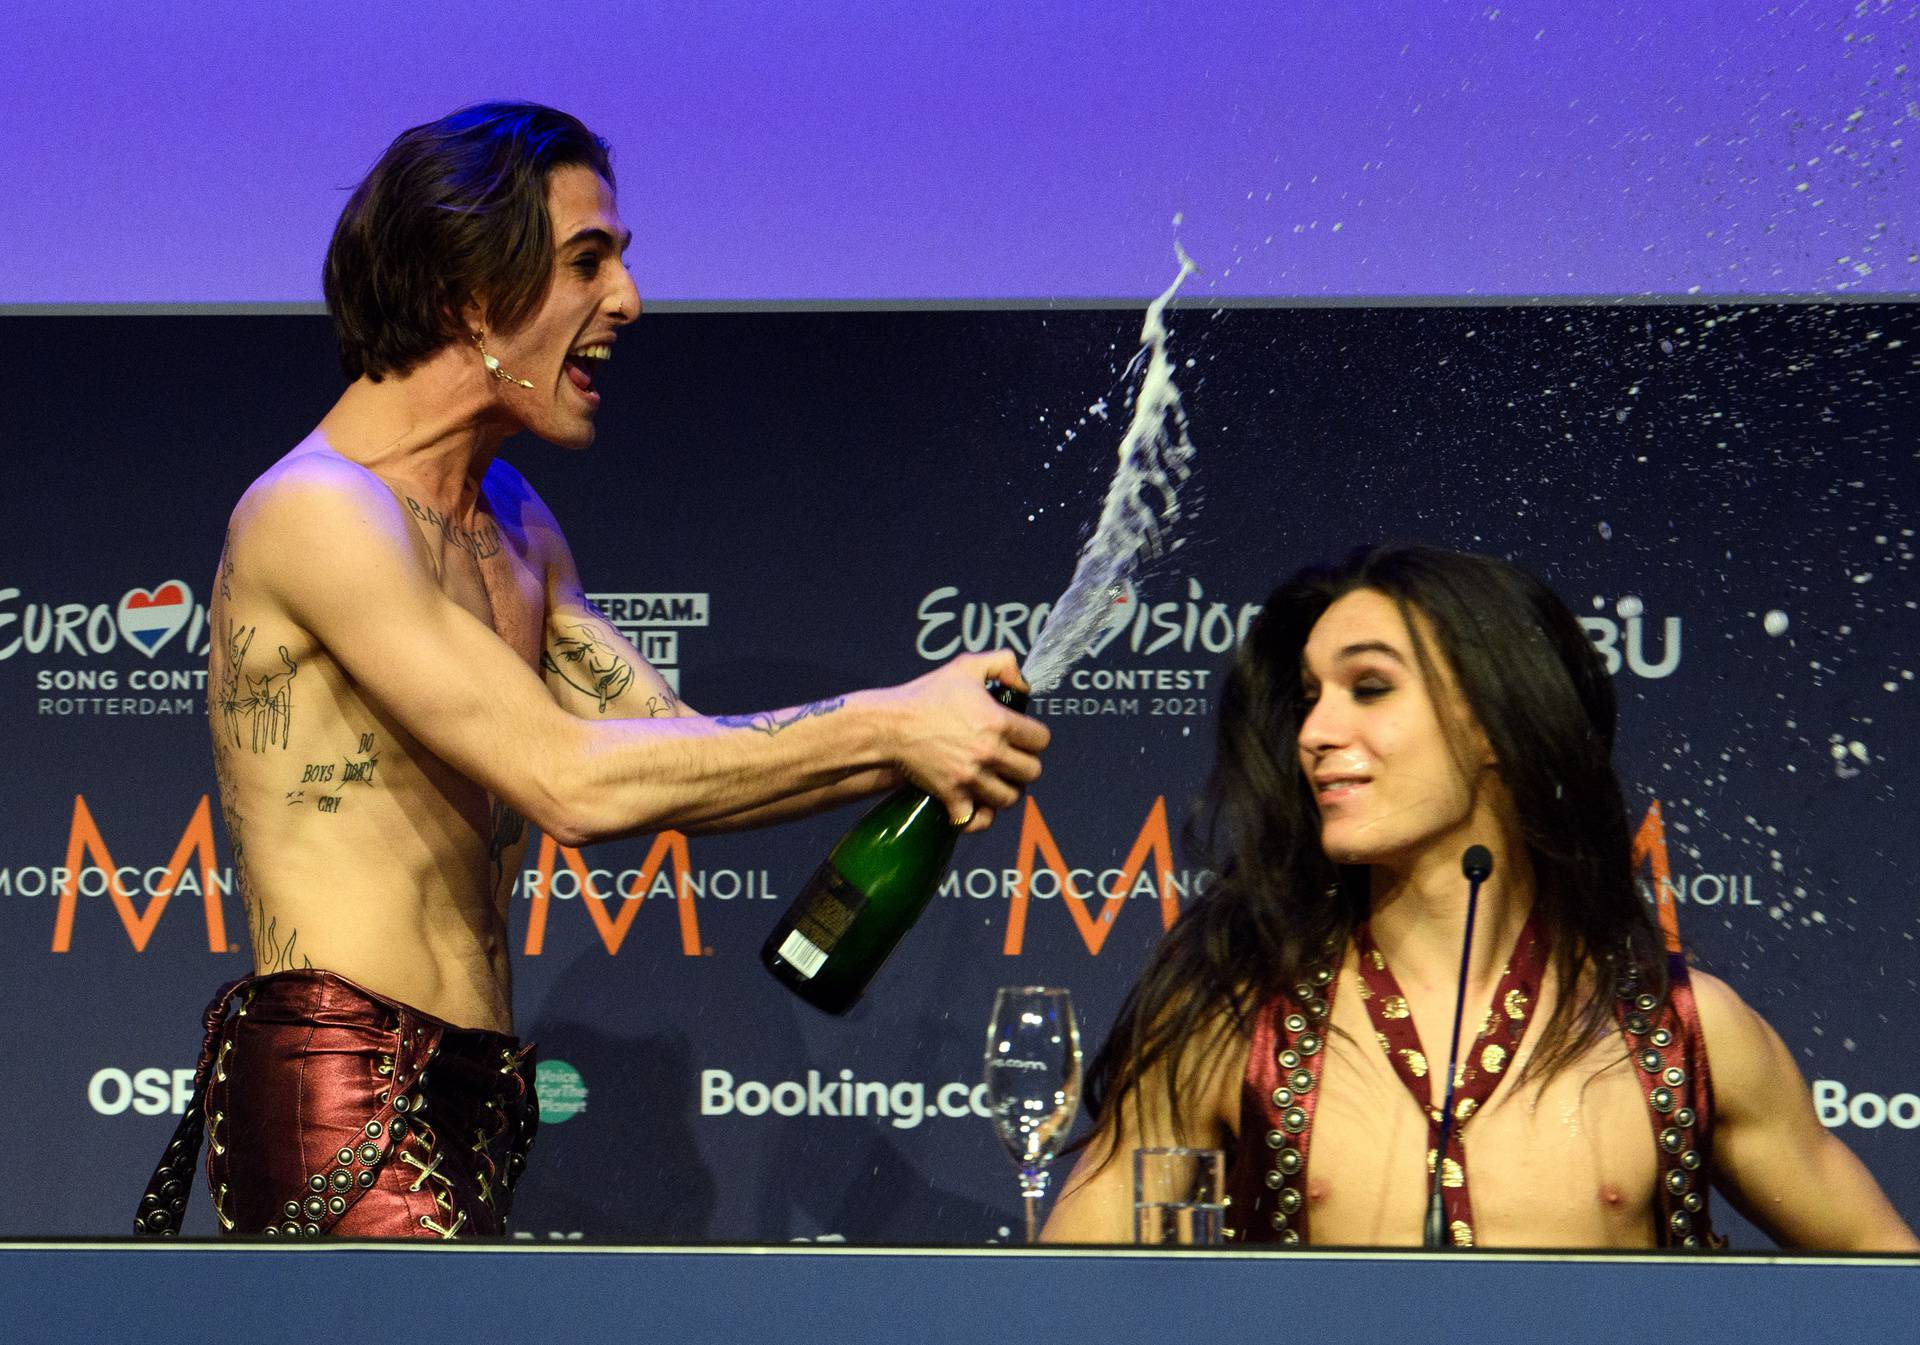 Eurovision Song Contest 2021 Rotterdam - Final